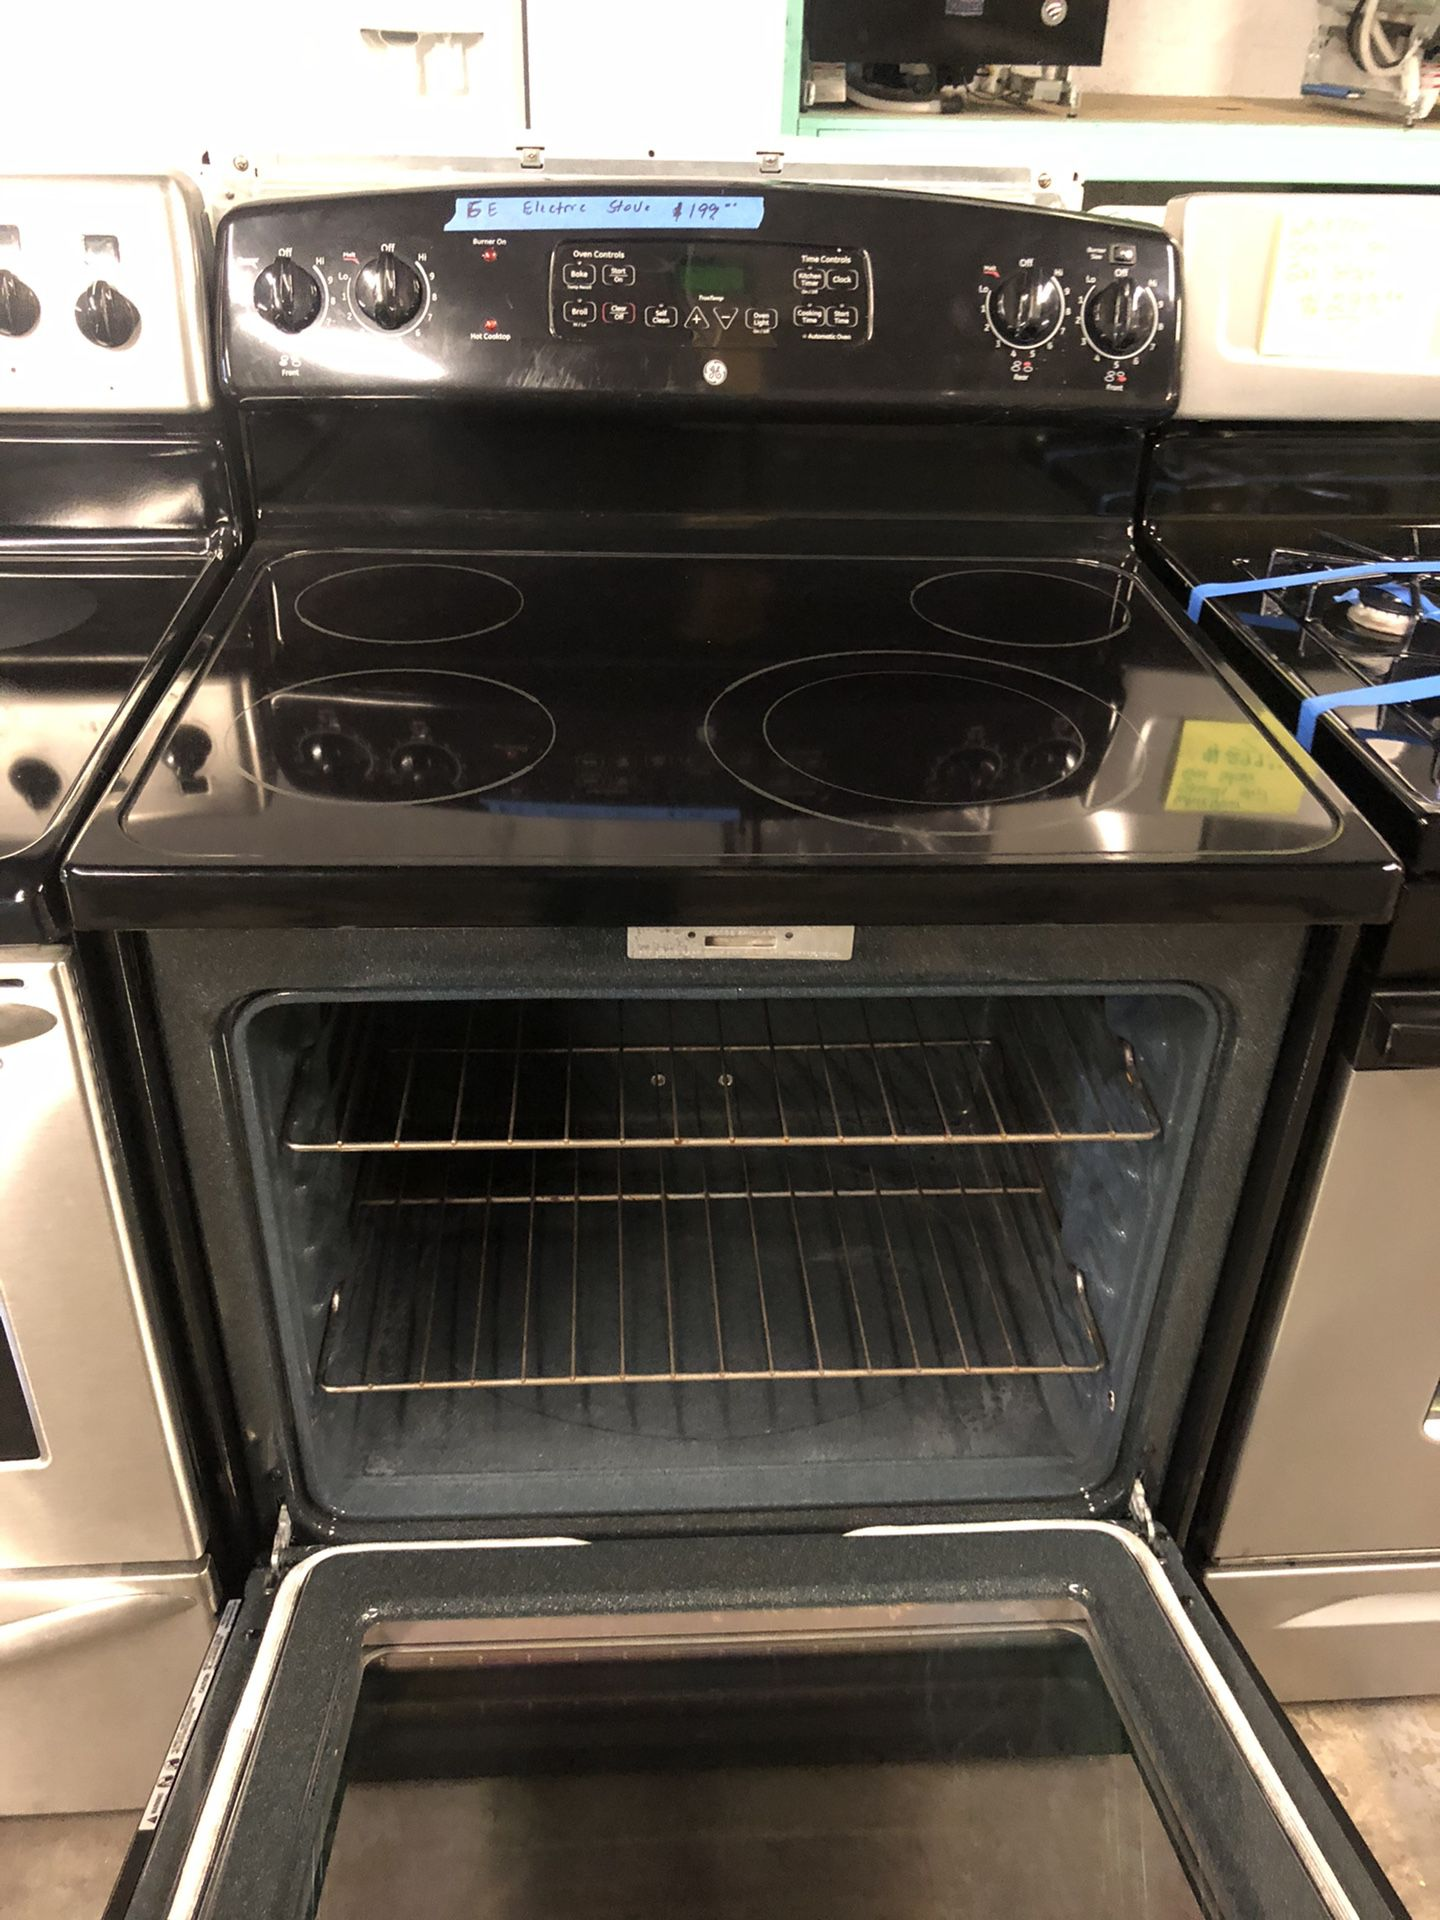 GE Electric Stove, in perfect condition with 4 months warranty